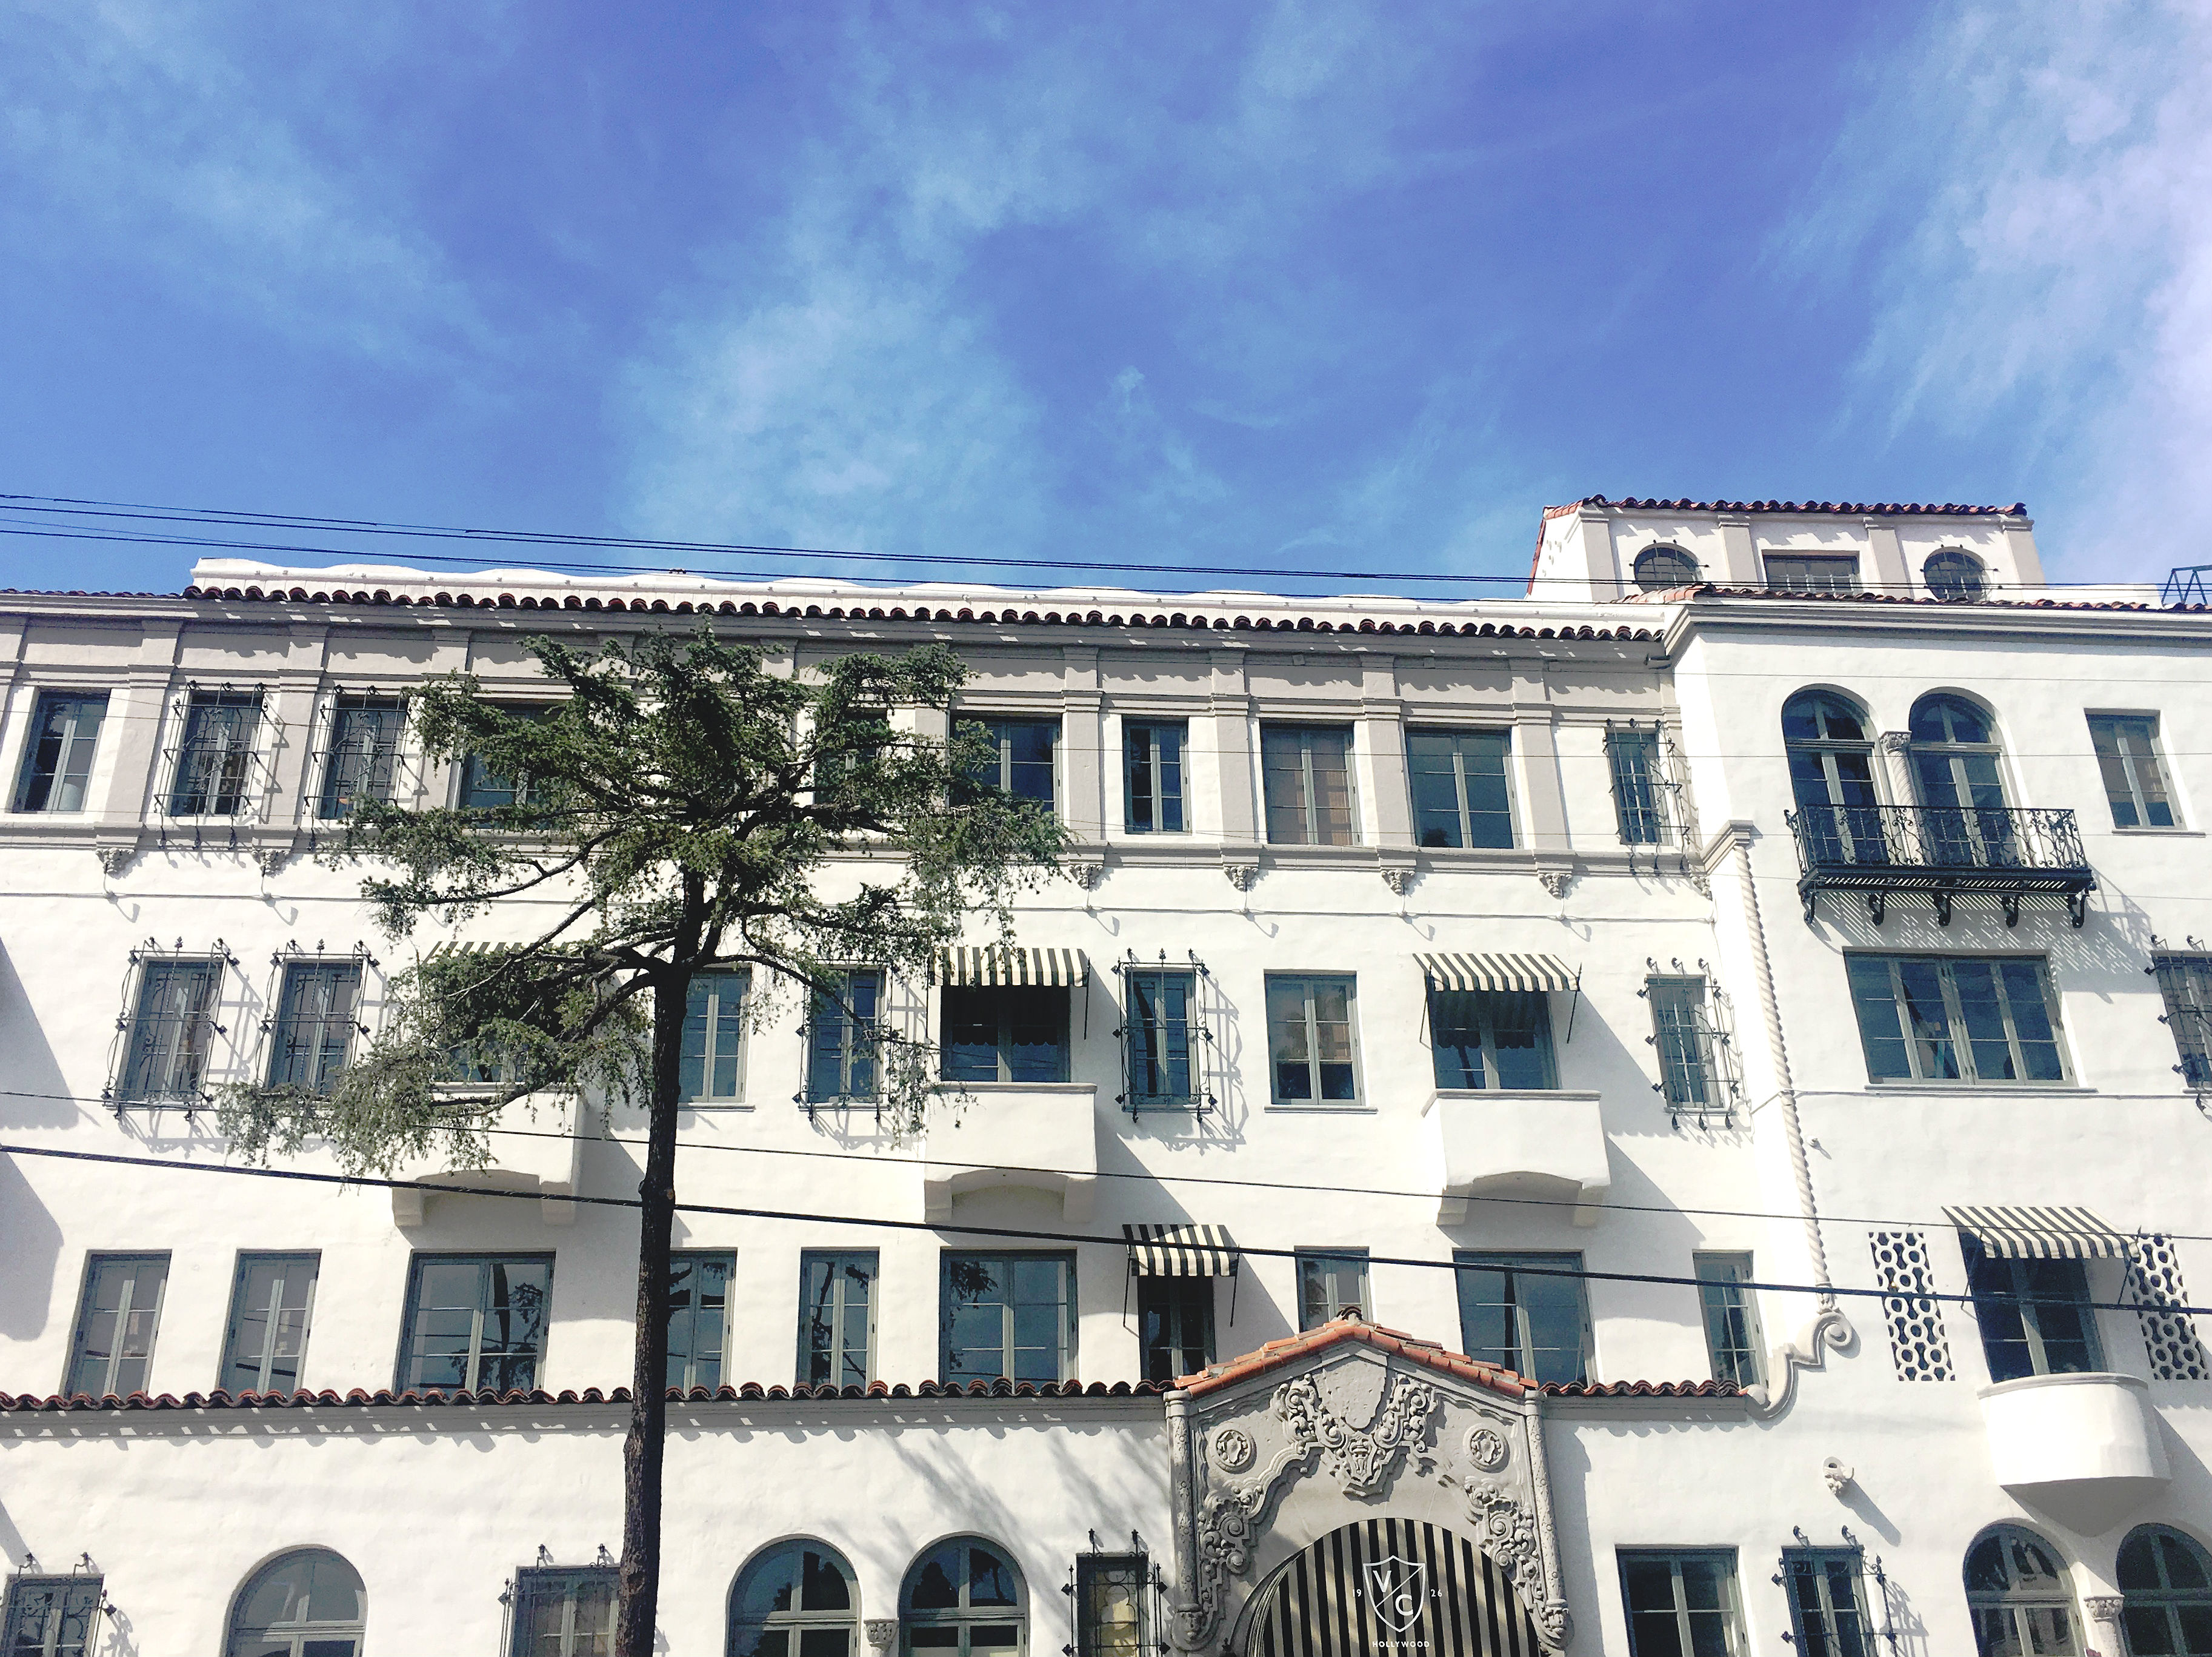 A photo of the historic building's upper floors and a palm tree in the foreground.